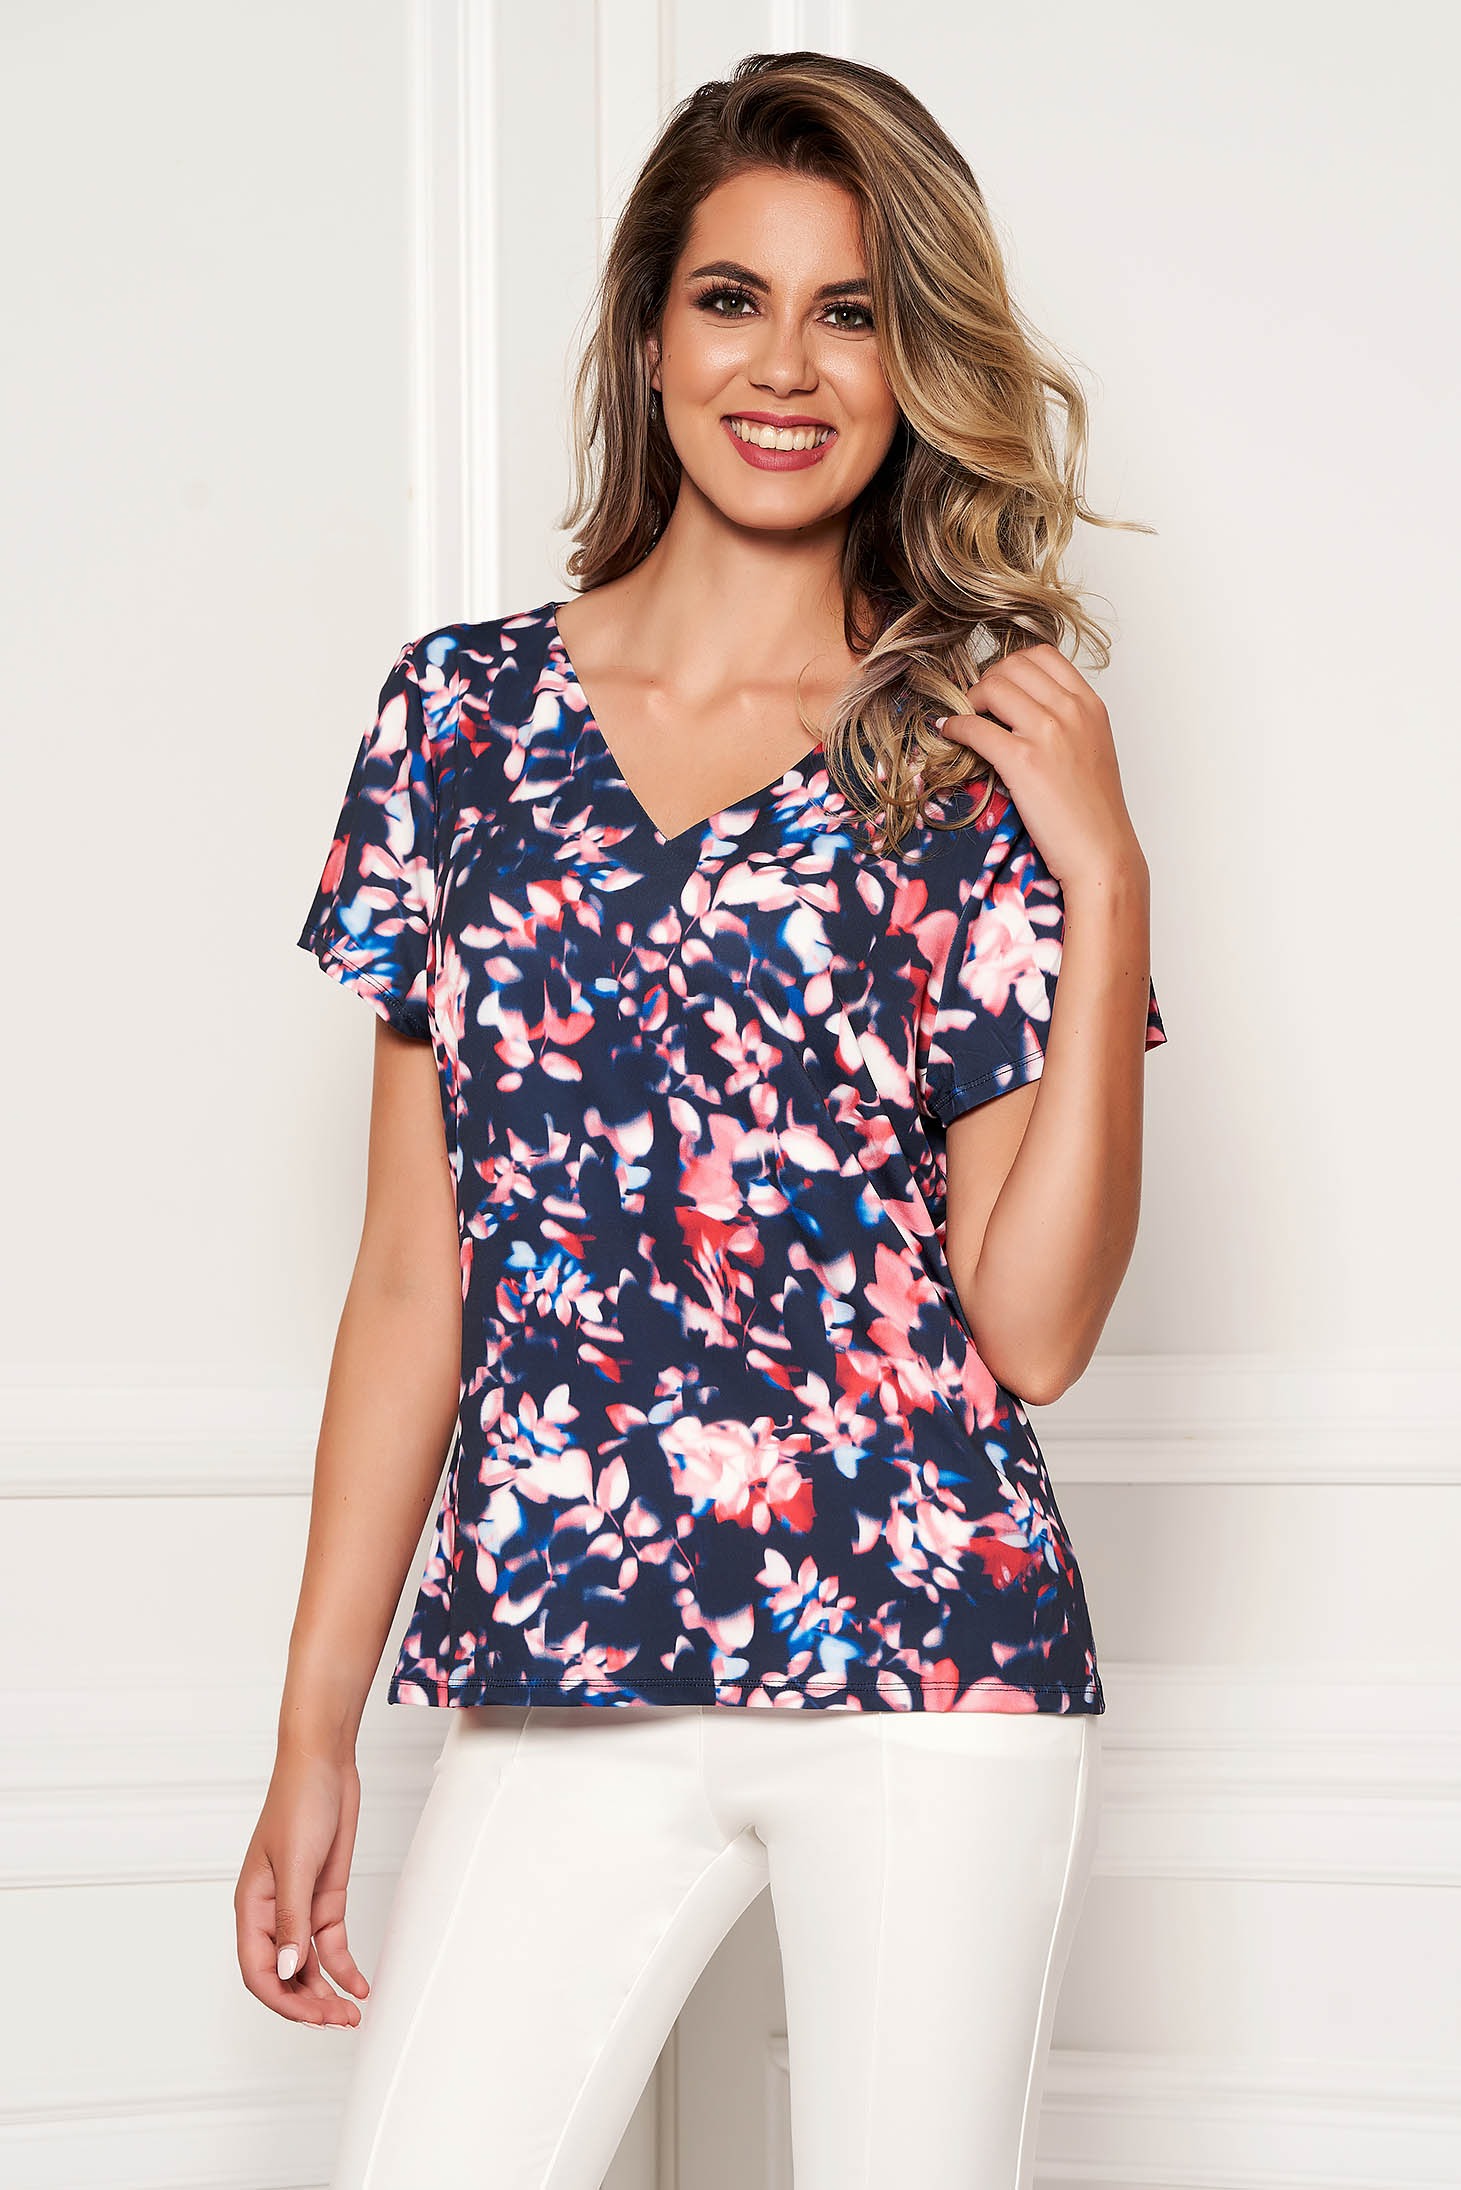 Darkblue women`s blouse with floral prints short sleeve casual with v-neckline